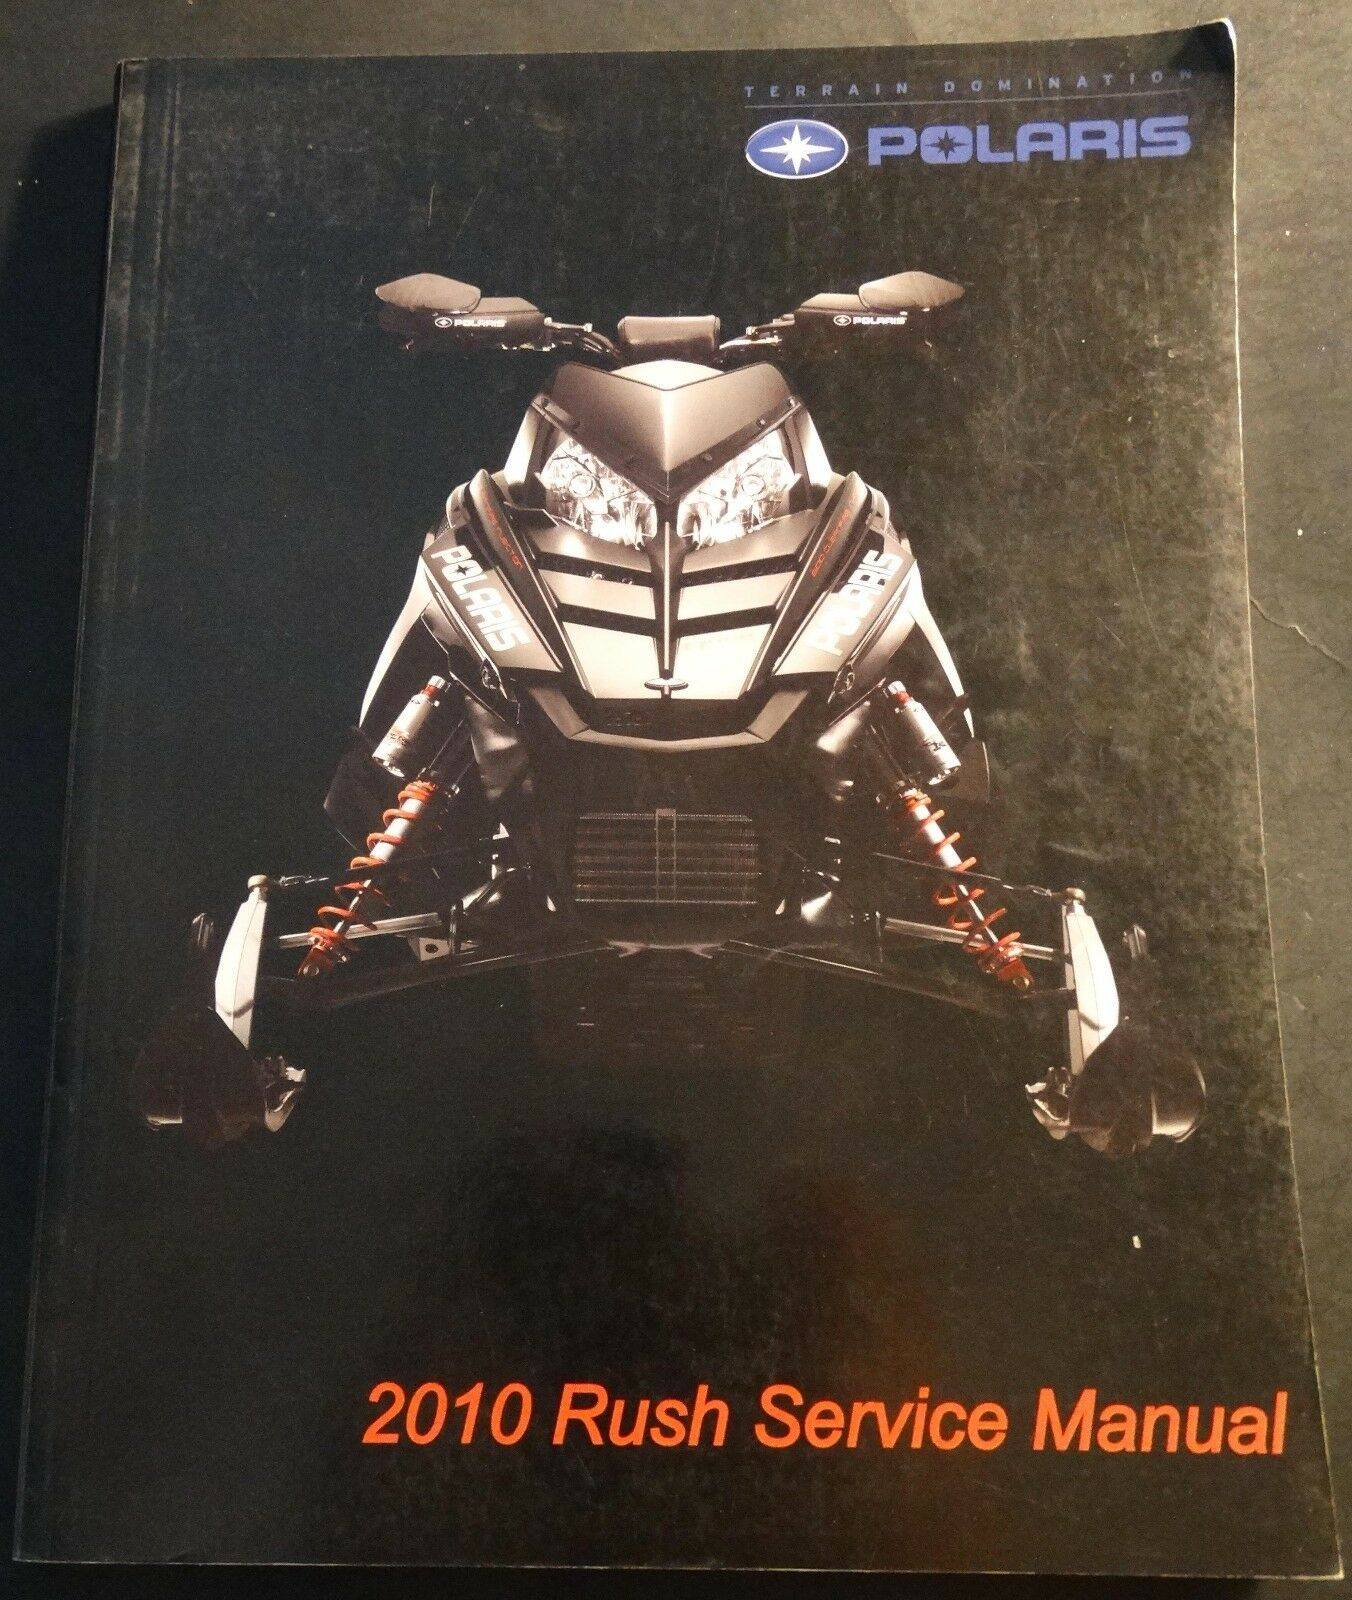 2010 POLARIS SNOWMOBILE RUSH SERVICE MANUAL LIGHTLY USED P/N 9922281 (273)